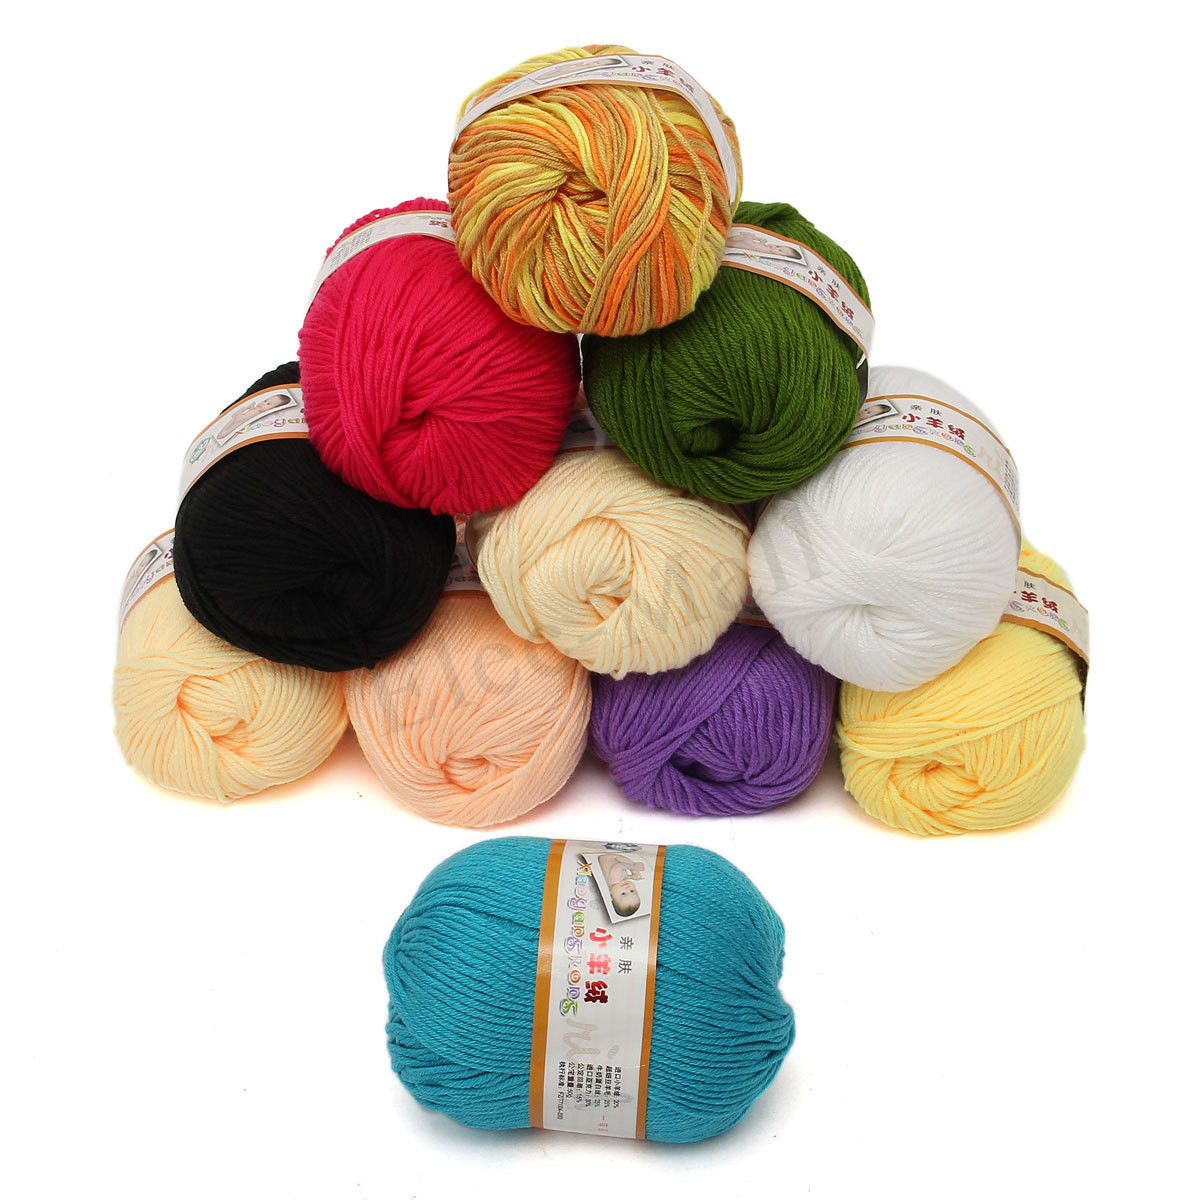 Awesome 57g Baby Crochet Cotton Yarn String Ball Hand Knitted Hand Crochet Yarn Of Delightful 43 Models Hand Crochet Yarn